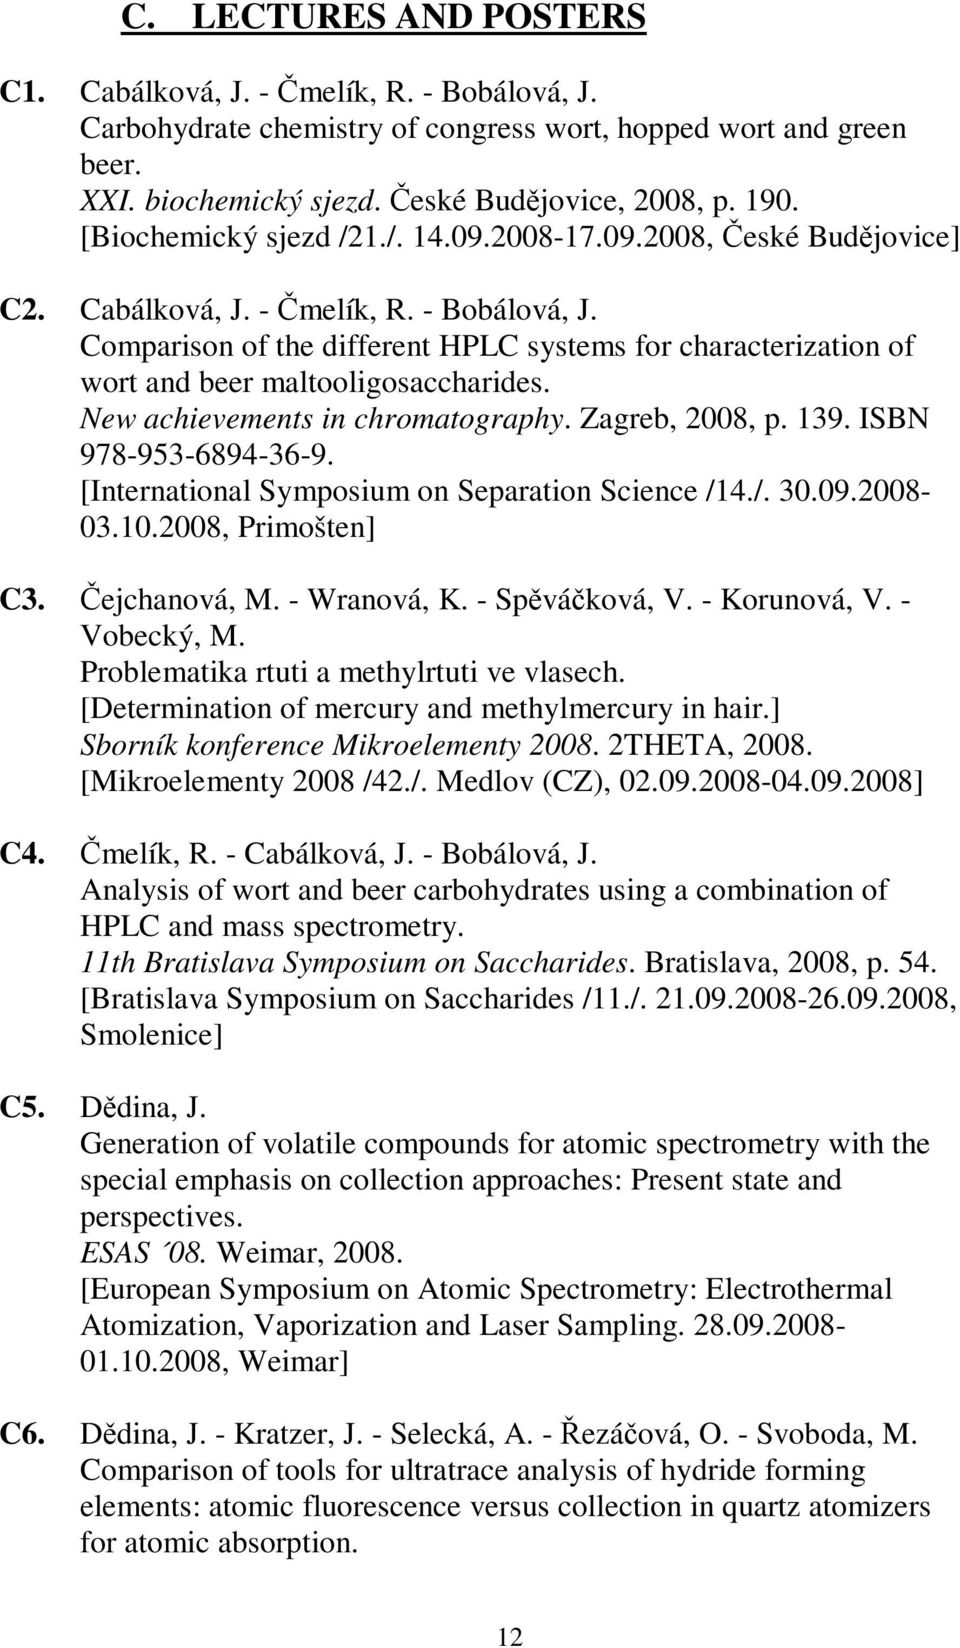 Comparison of the different HPLC systems for characterization of wort and beer maltooligosaccharides. New achievements in chromatography. Zagreb, 2008, p. 139. ISBN 978-953-6894-36-9.